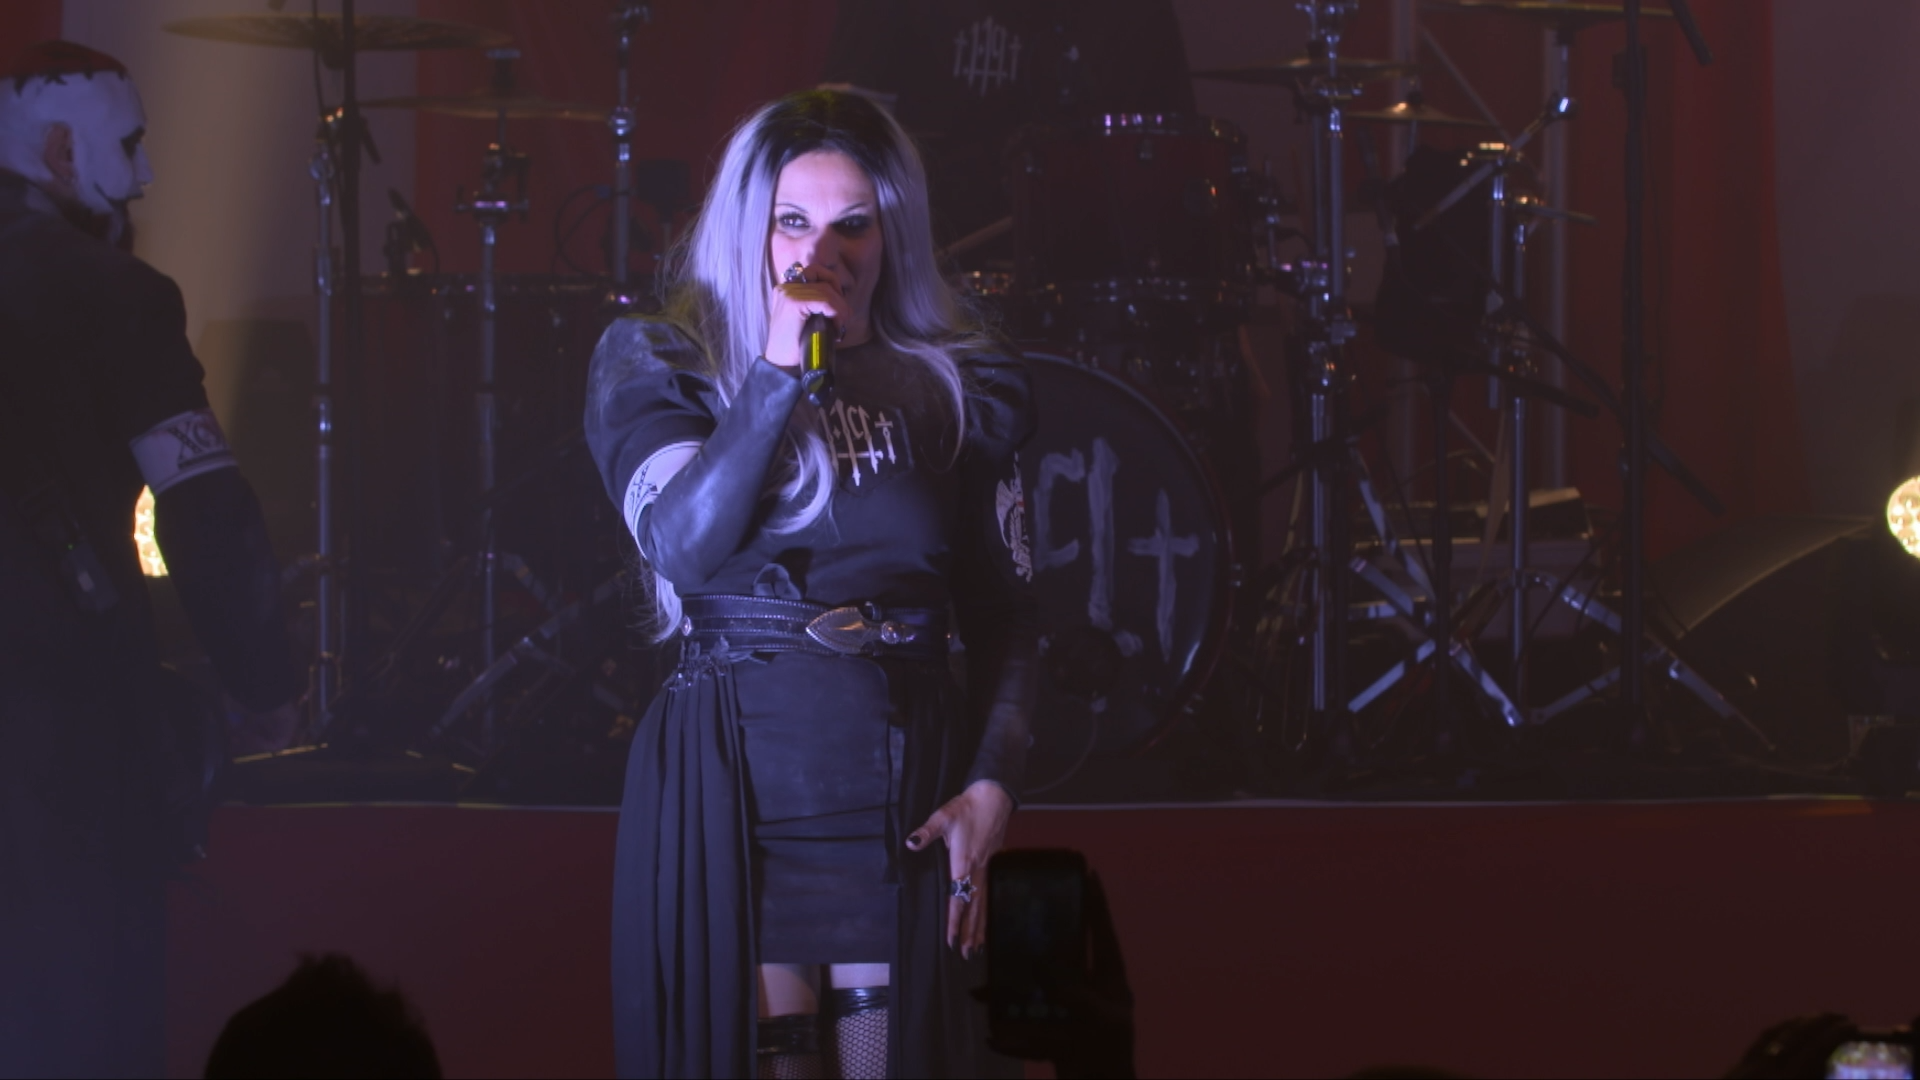 Lacuna Coil - The 119 Show: Live In London (2018/Blu-Ray) 1080p